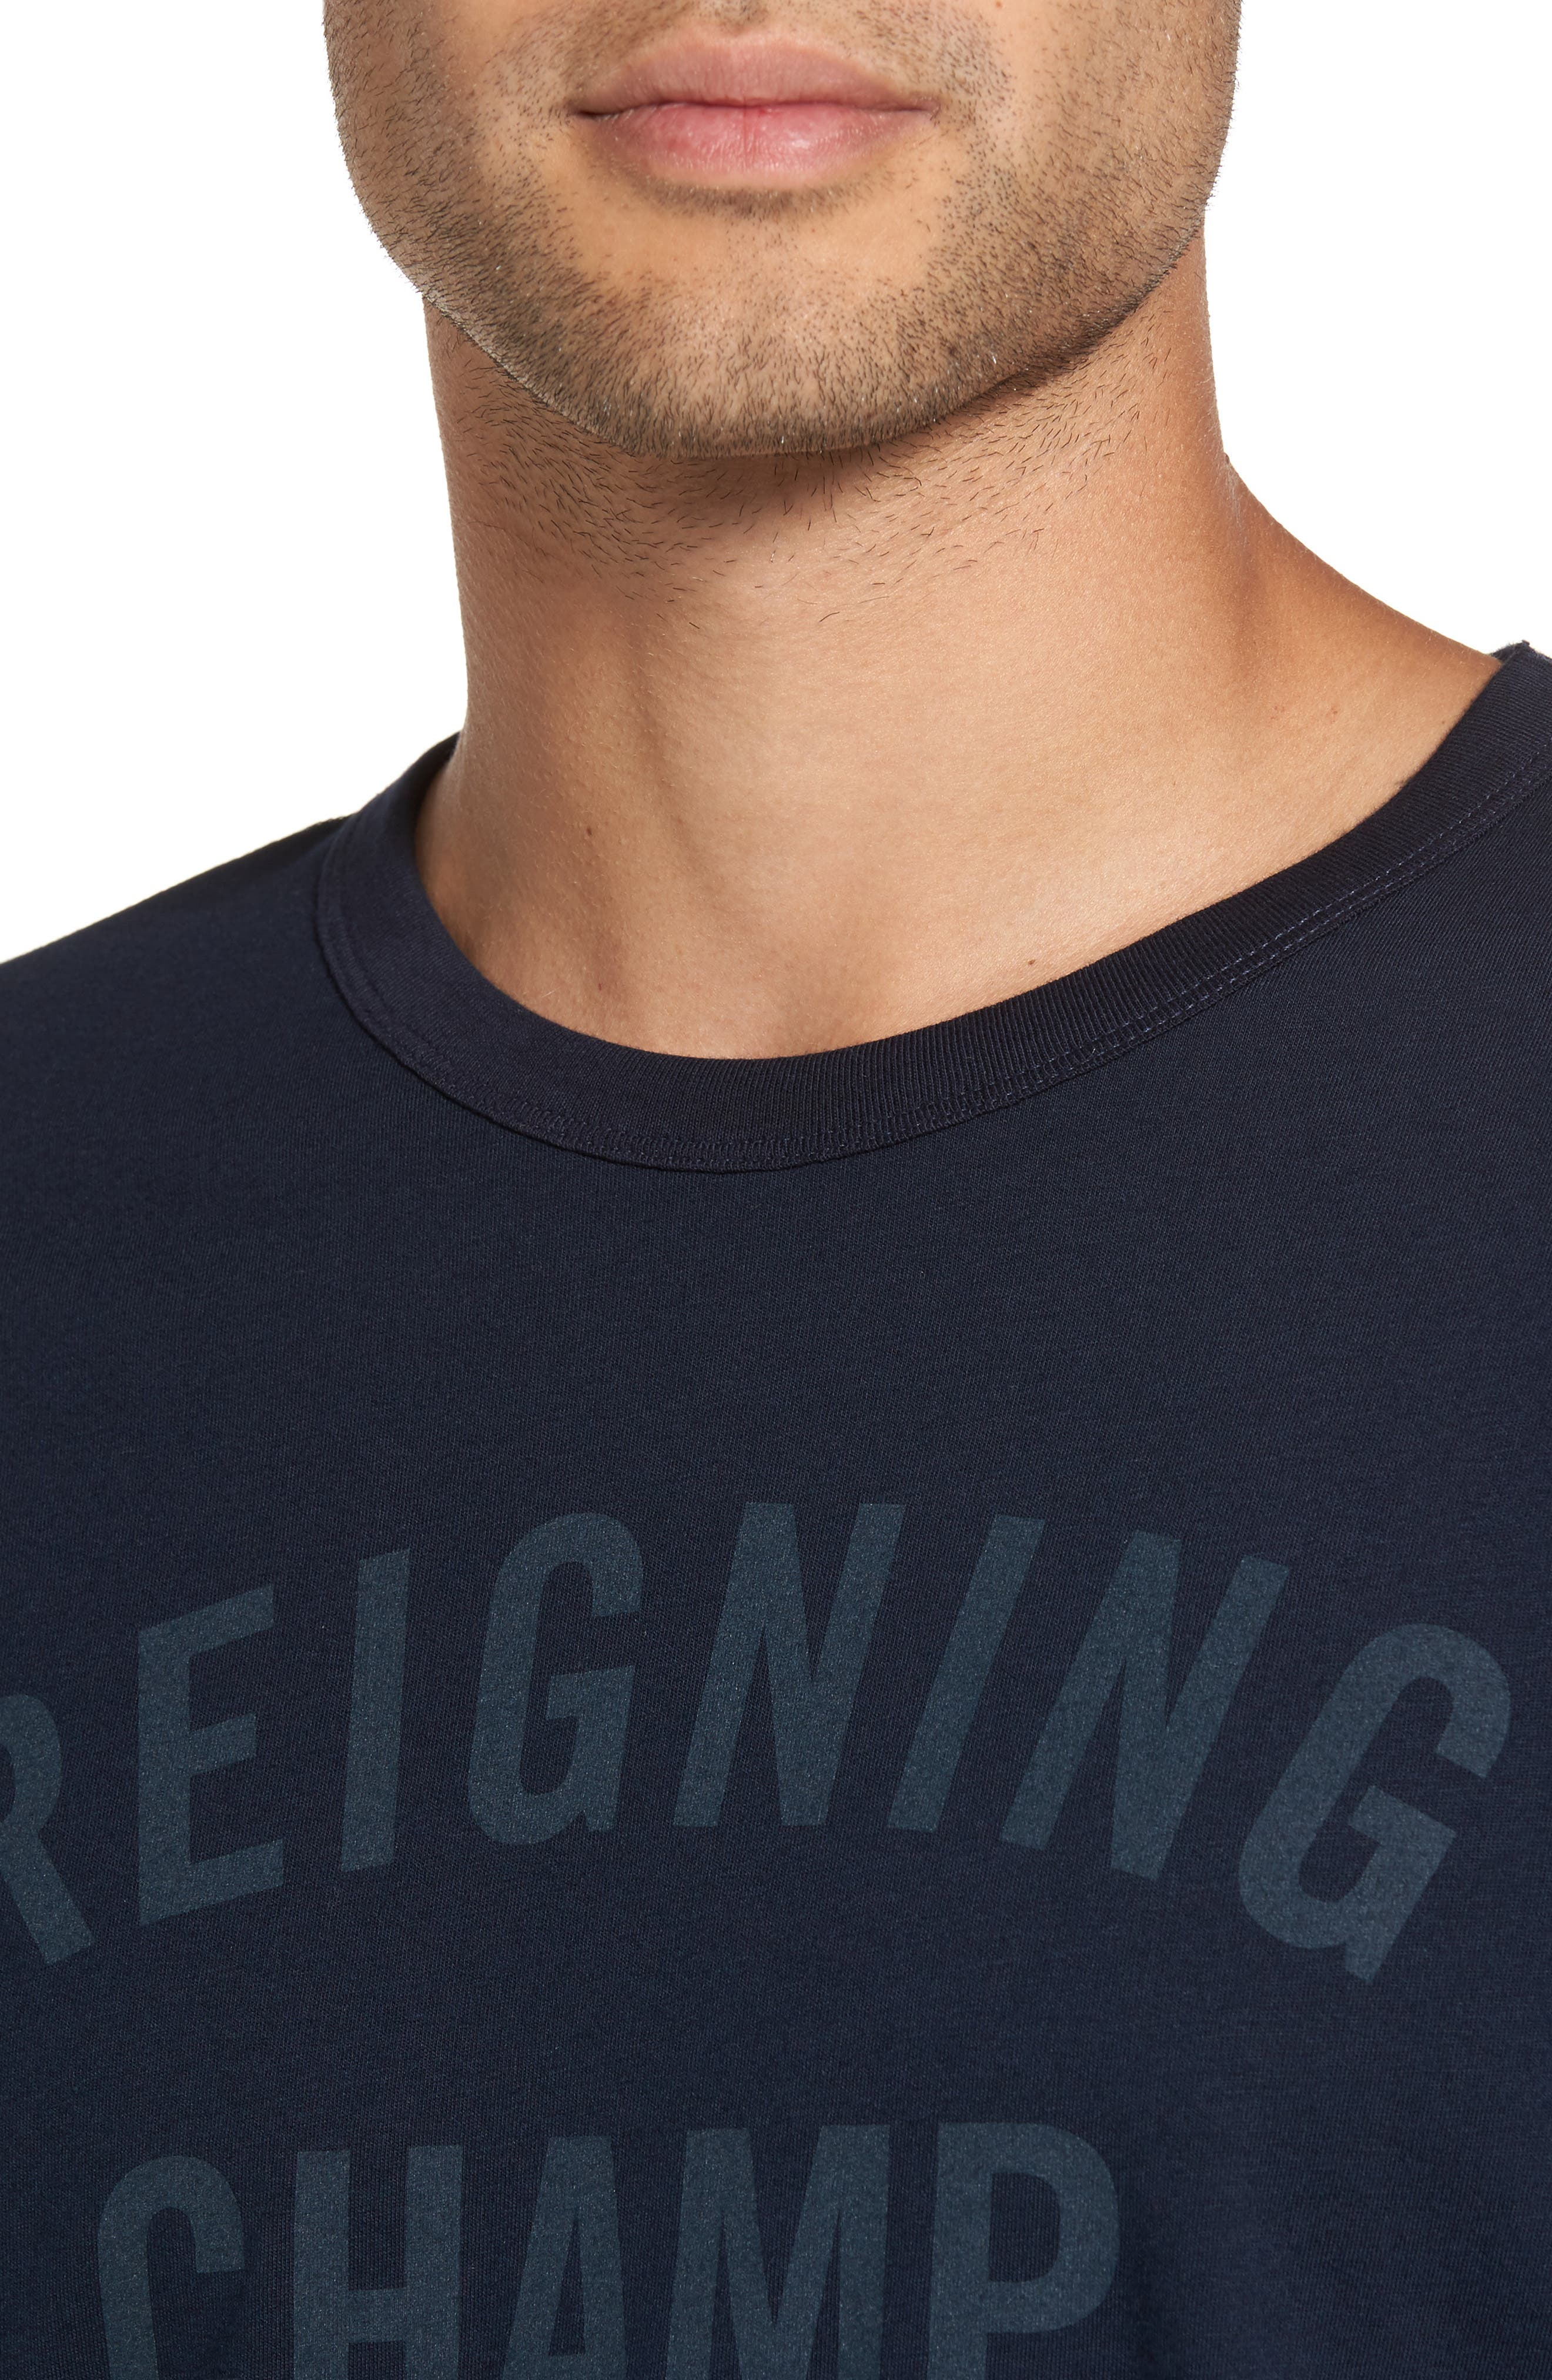 Alternate Image 4  - Reigning Champ 'Gym Logo' Graphic T-Shirt